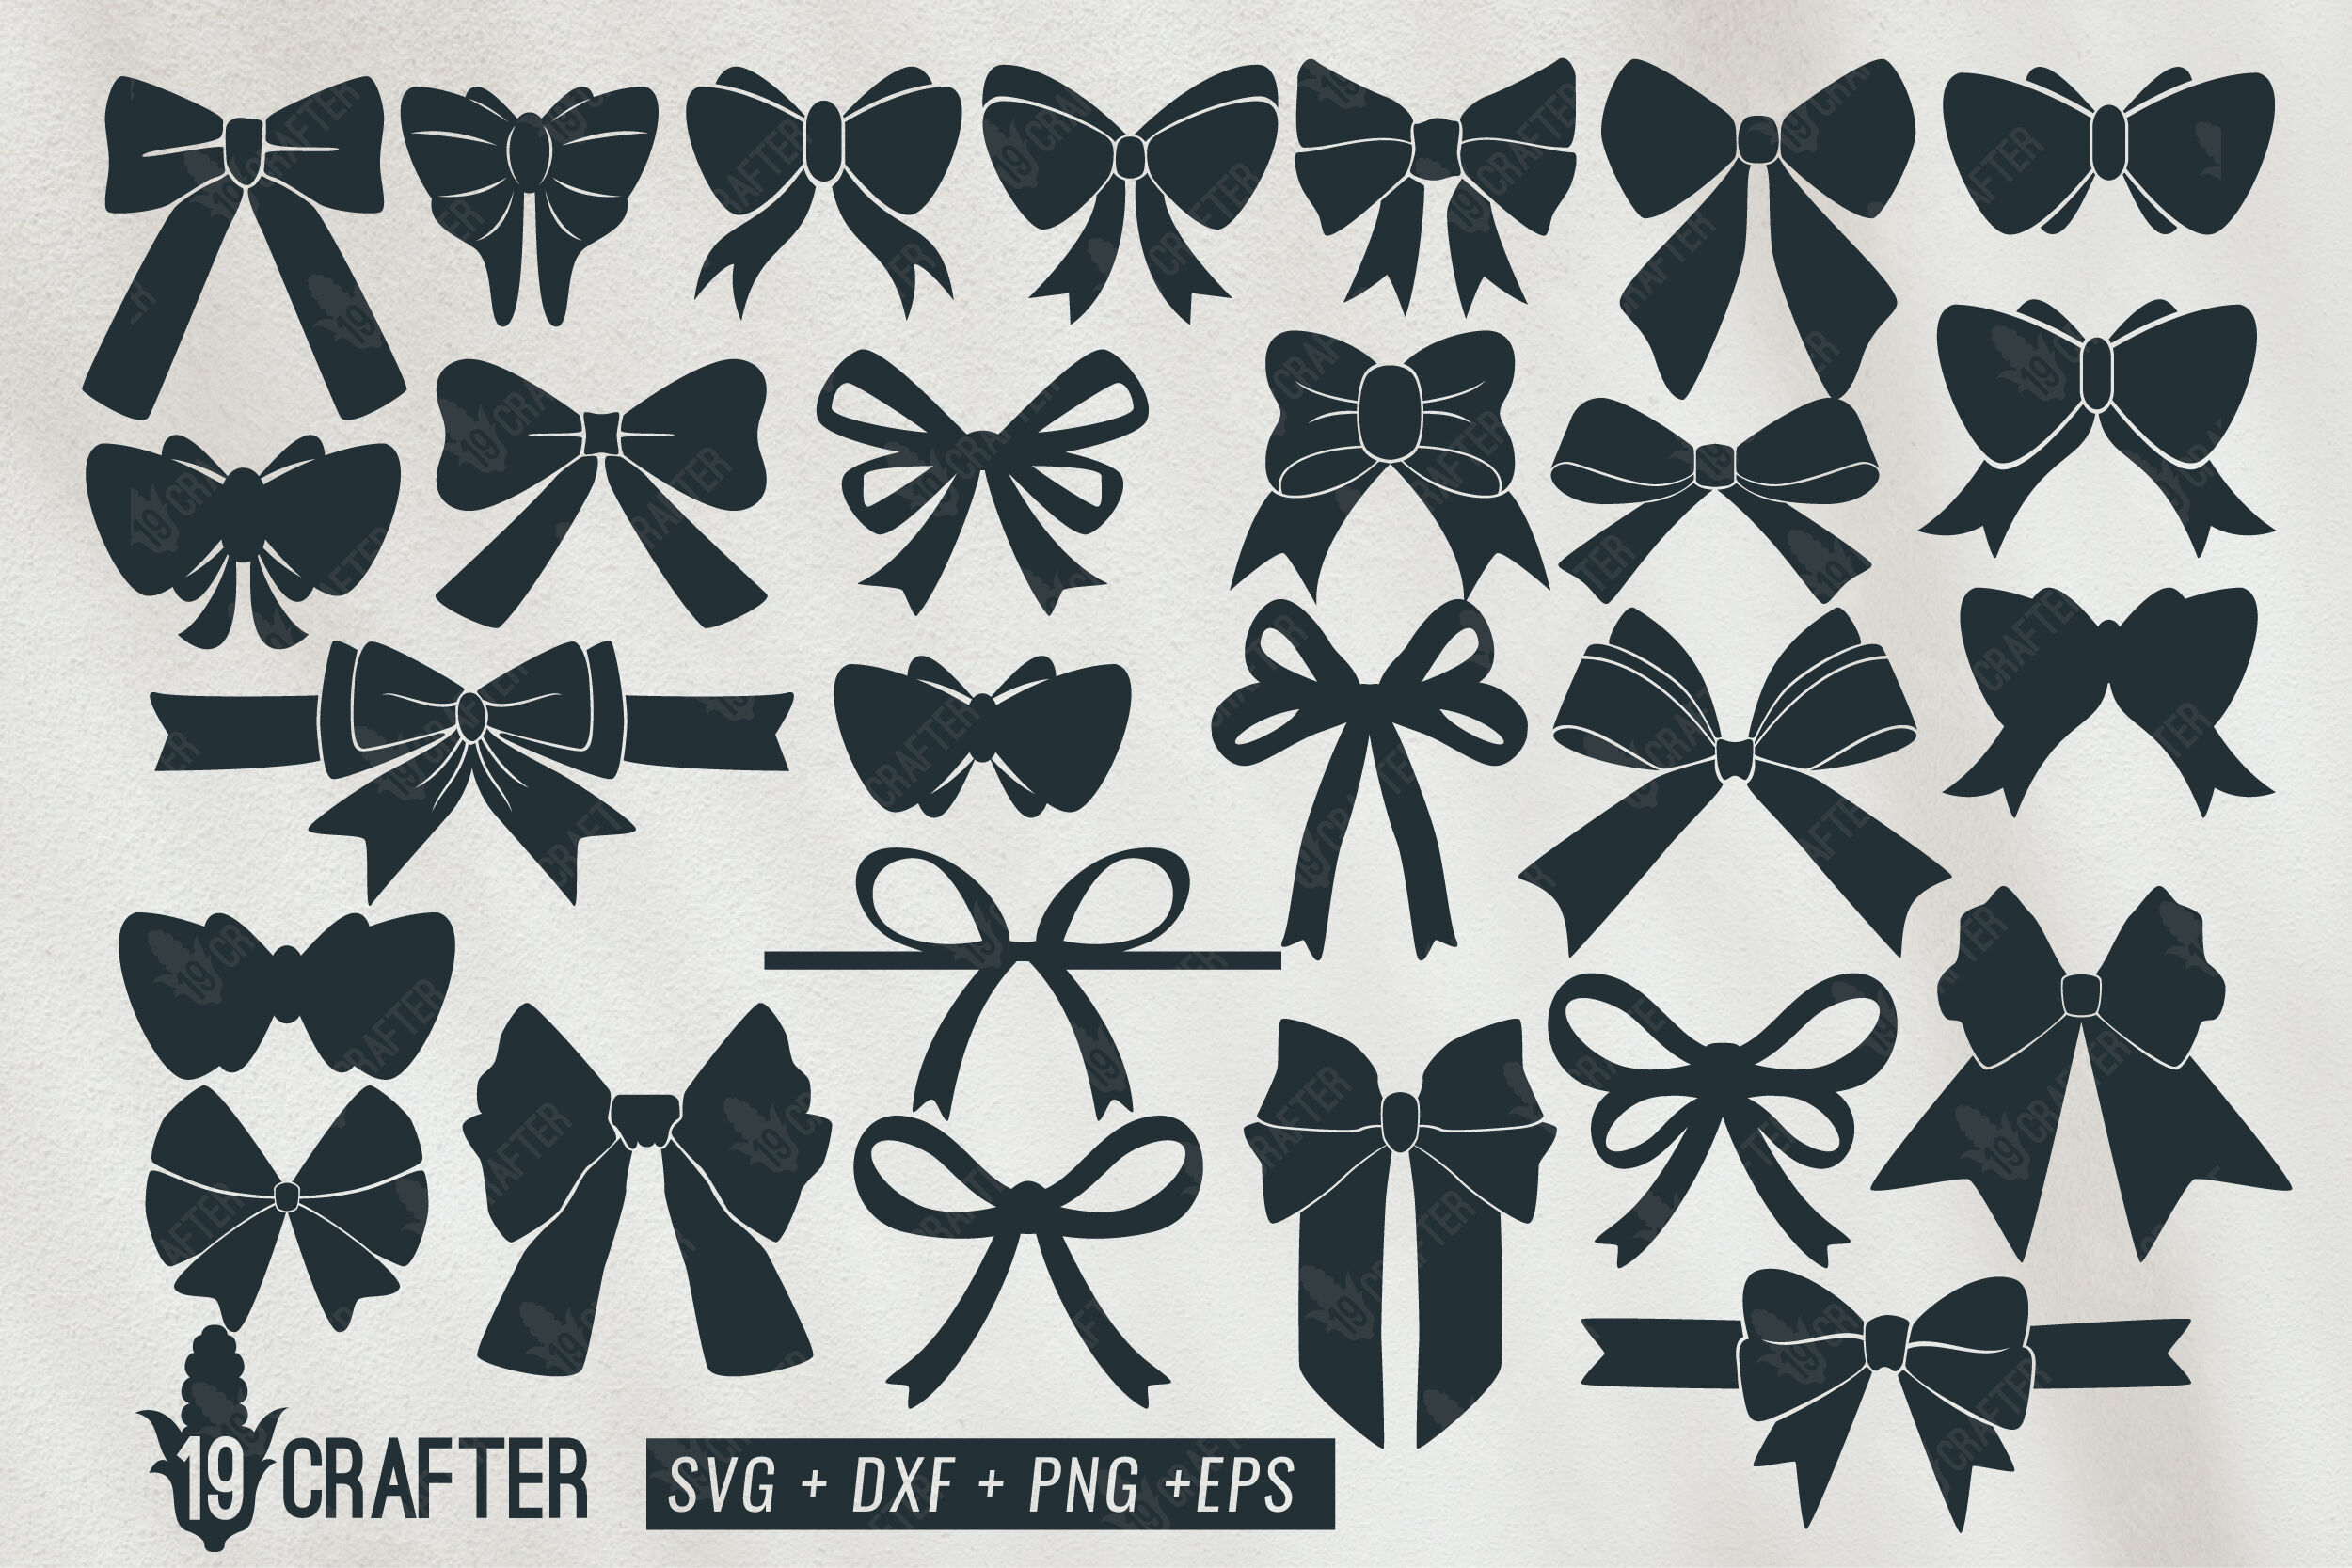 Cute And Beautiful Bow Tie Ribbon Knot Svg Bundle By Greatype19